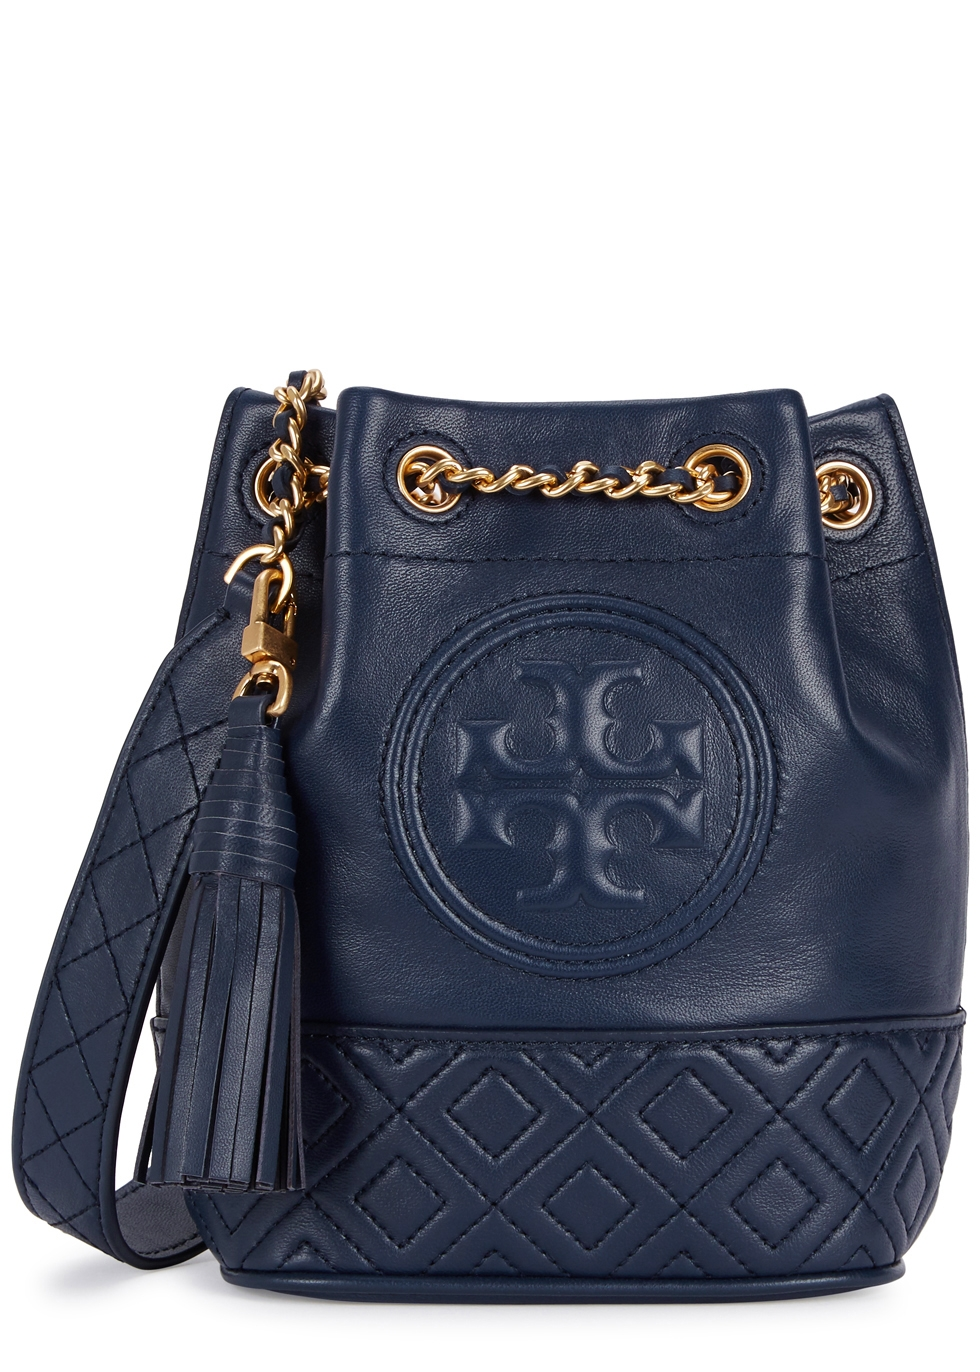 TORY BURCH FLEMING MINI NAVY LEATHER BUCKET BAG